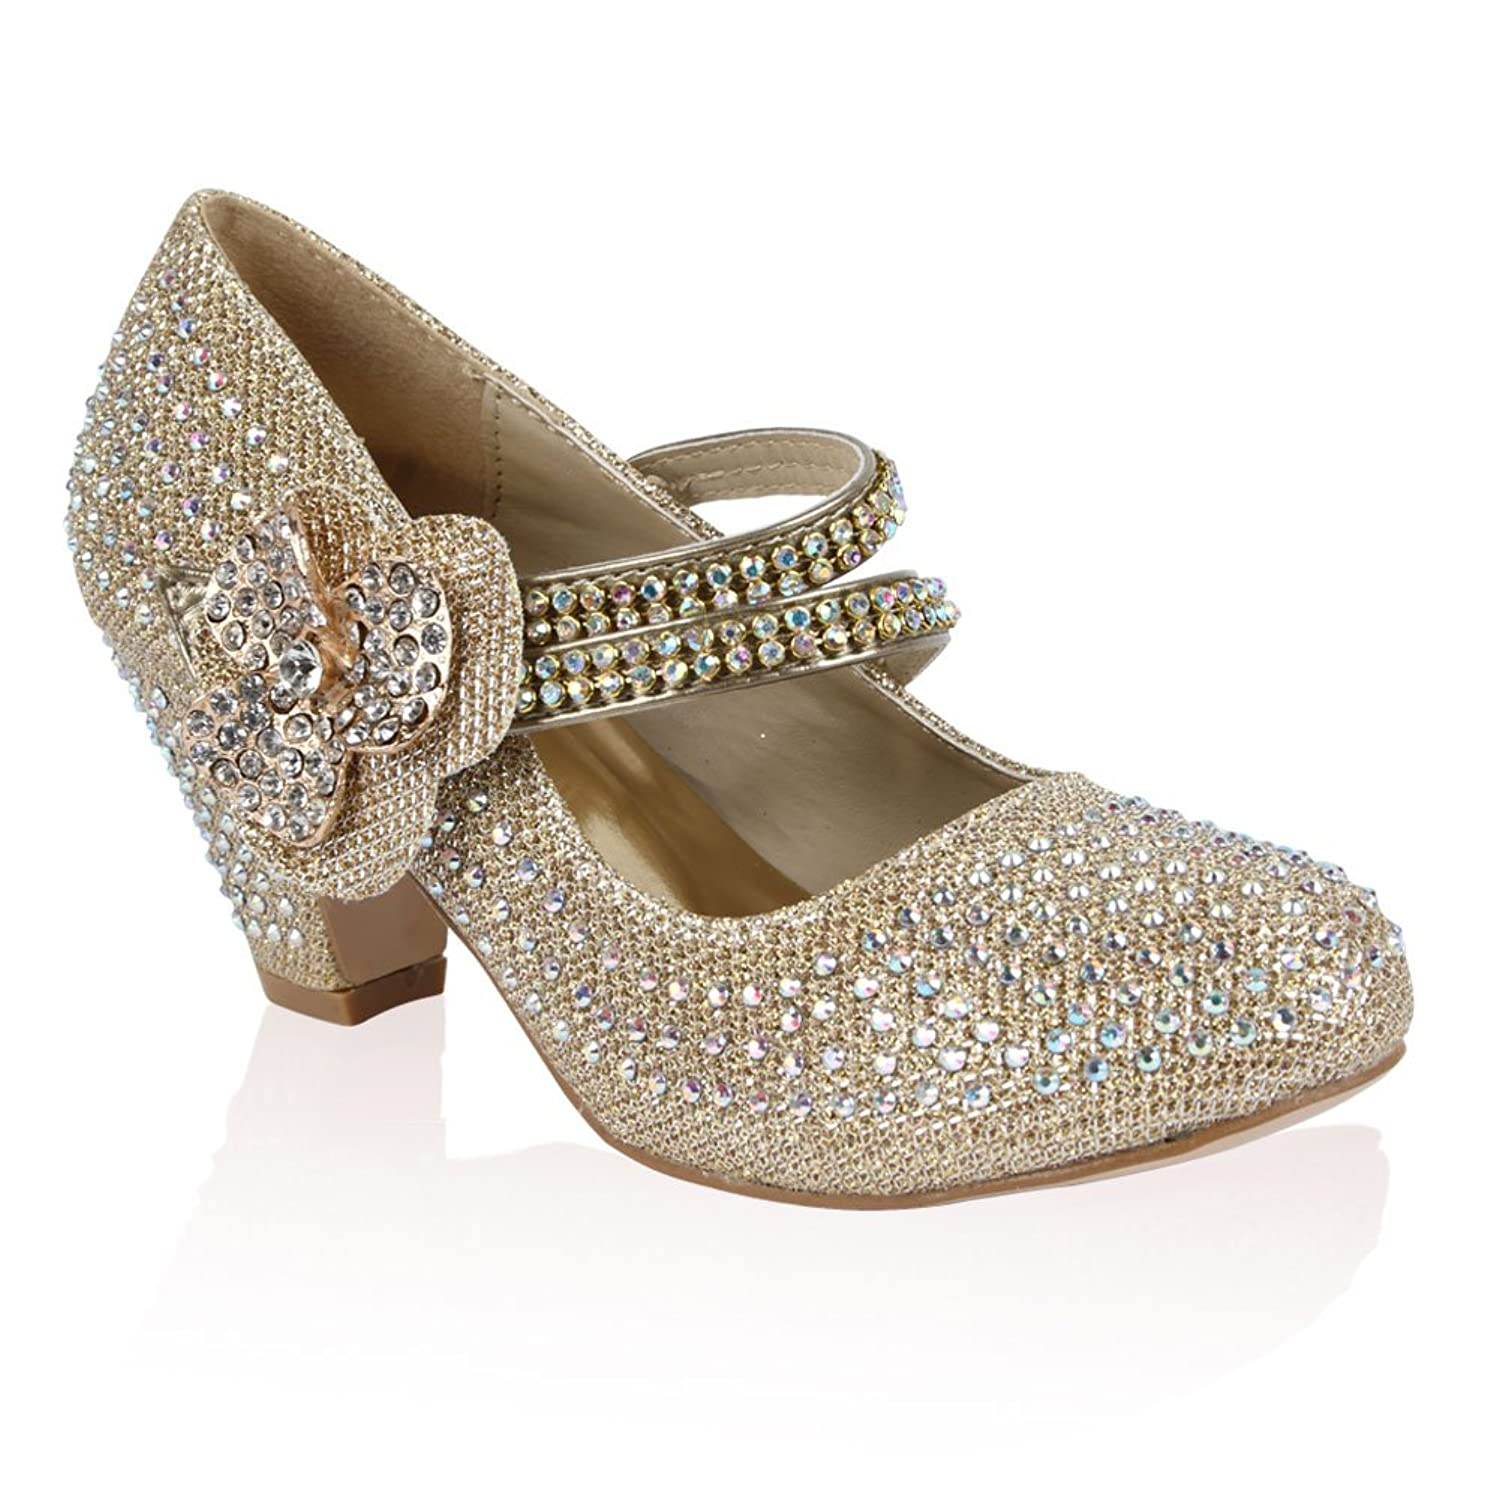 21B Girls Diamante Glitter Kids Party Wedding Mary Jane Low Heel Shoe